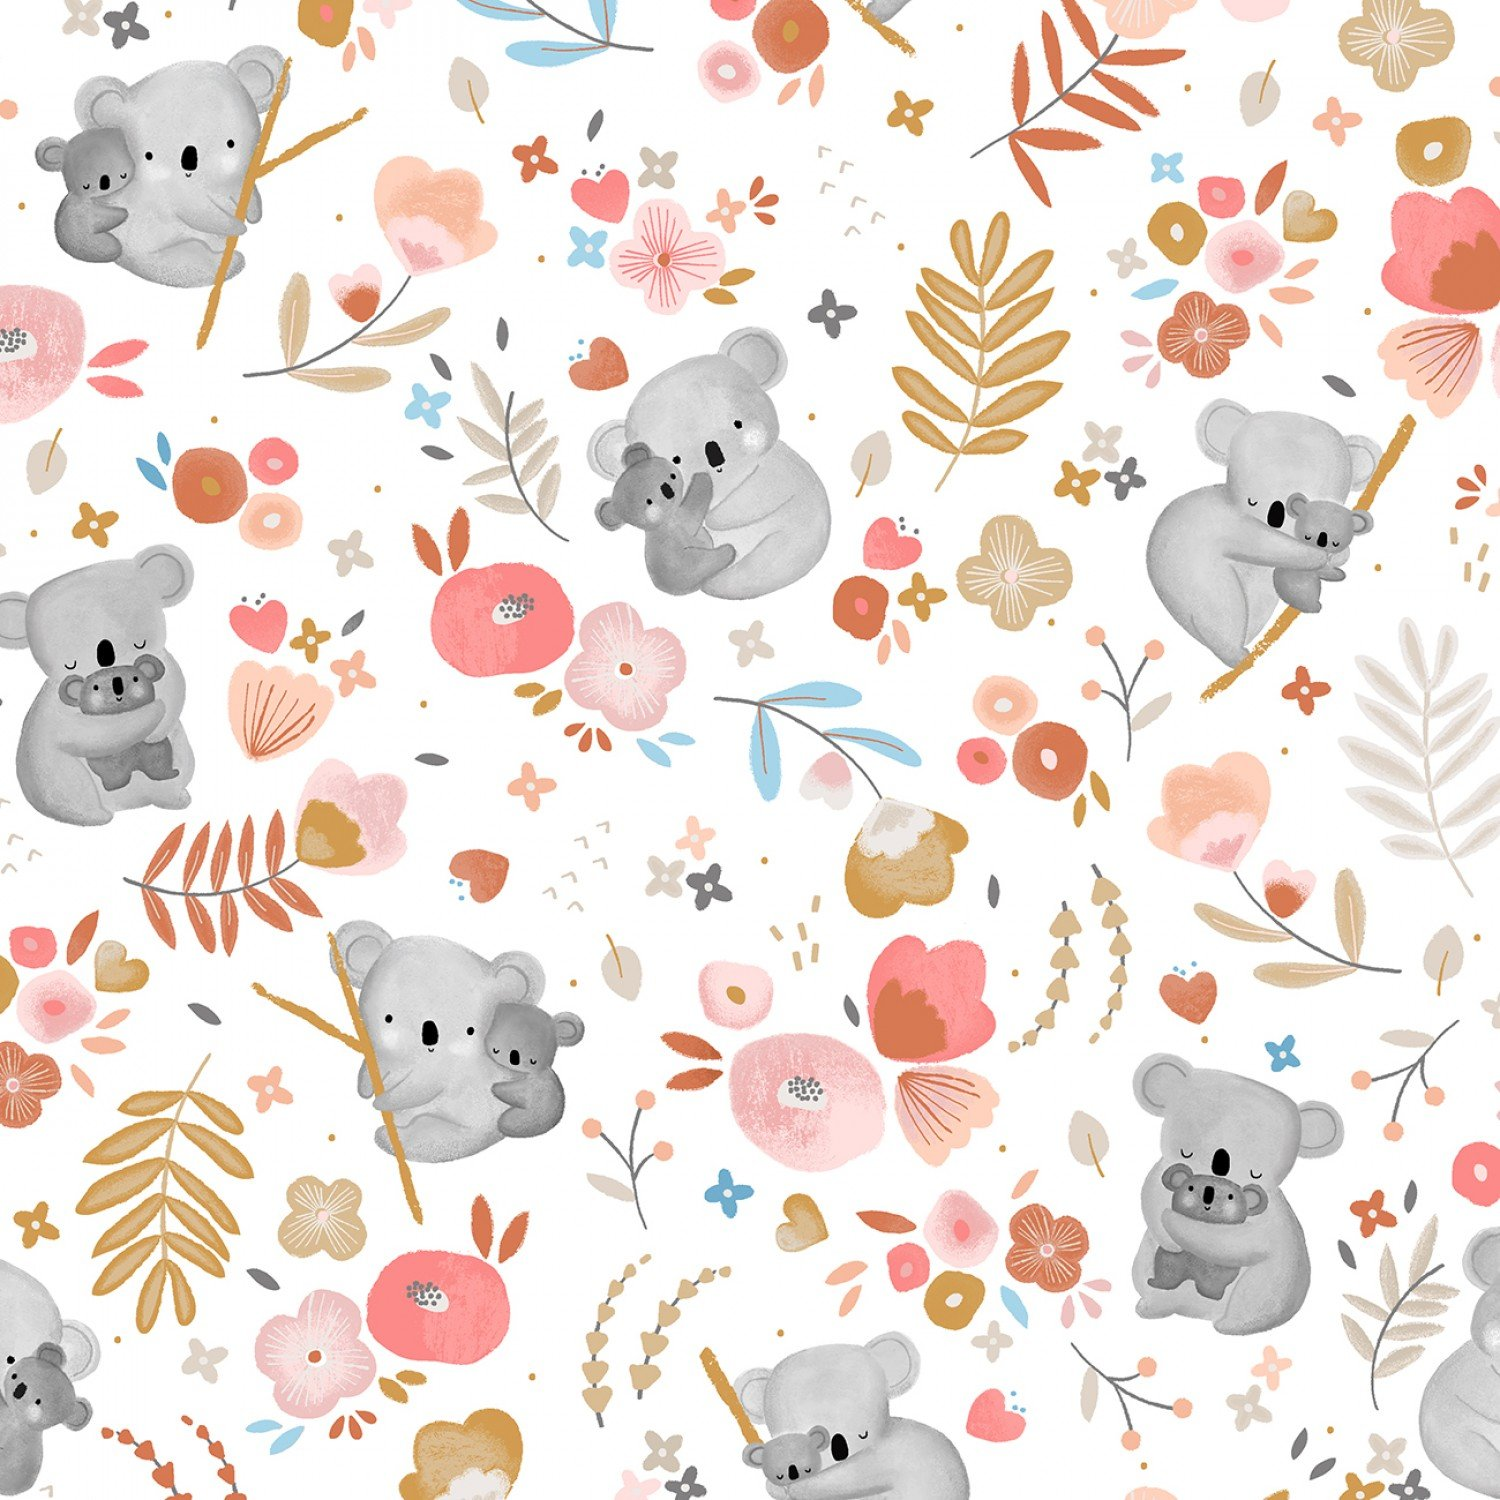 Exploring With Mom Children's Fabric Yardage 42-43 Inches Wide